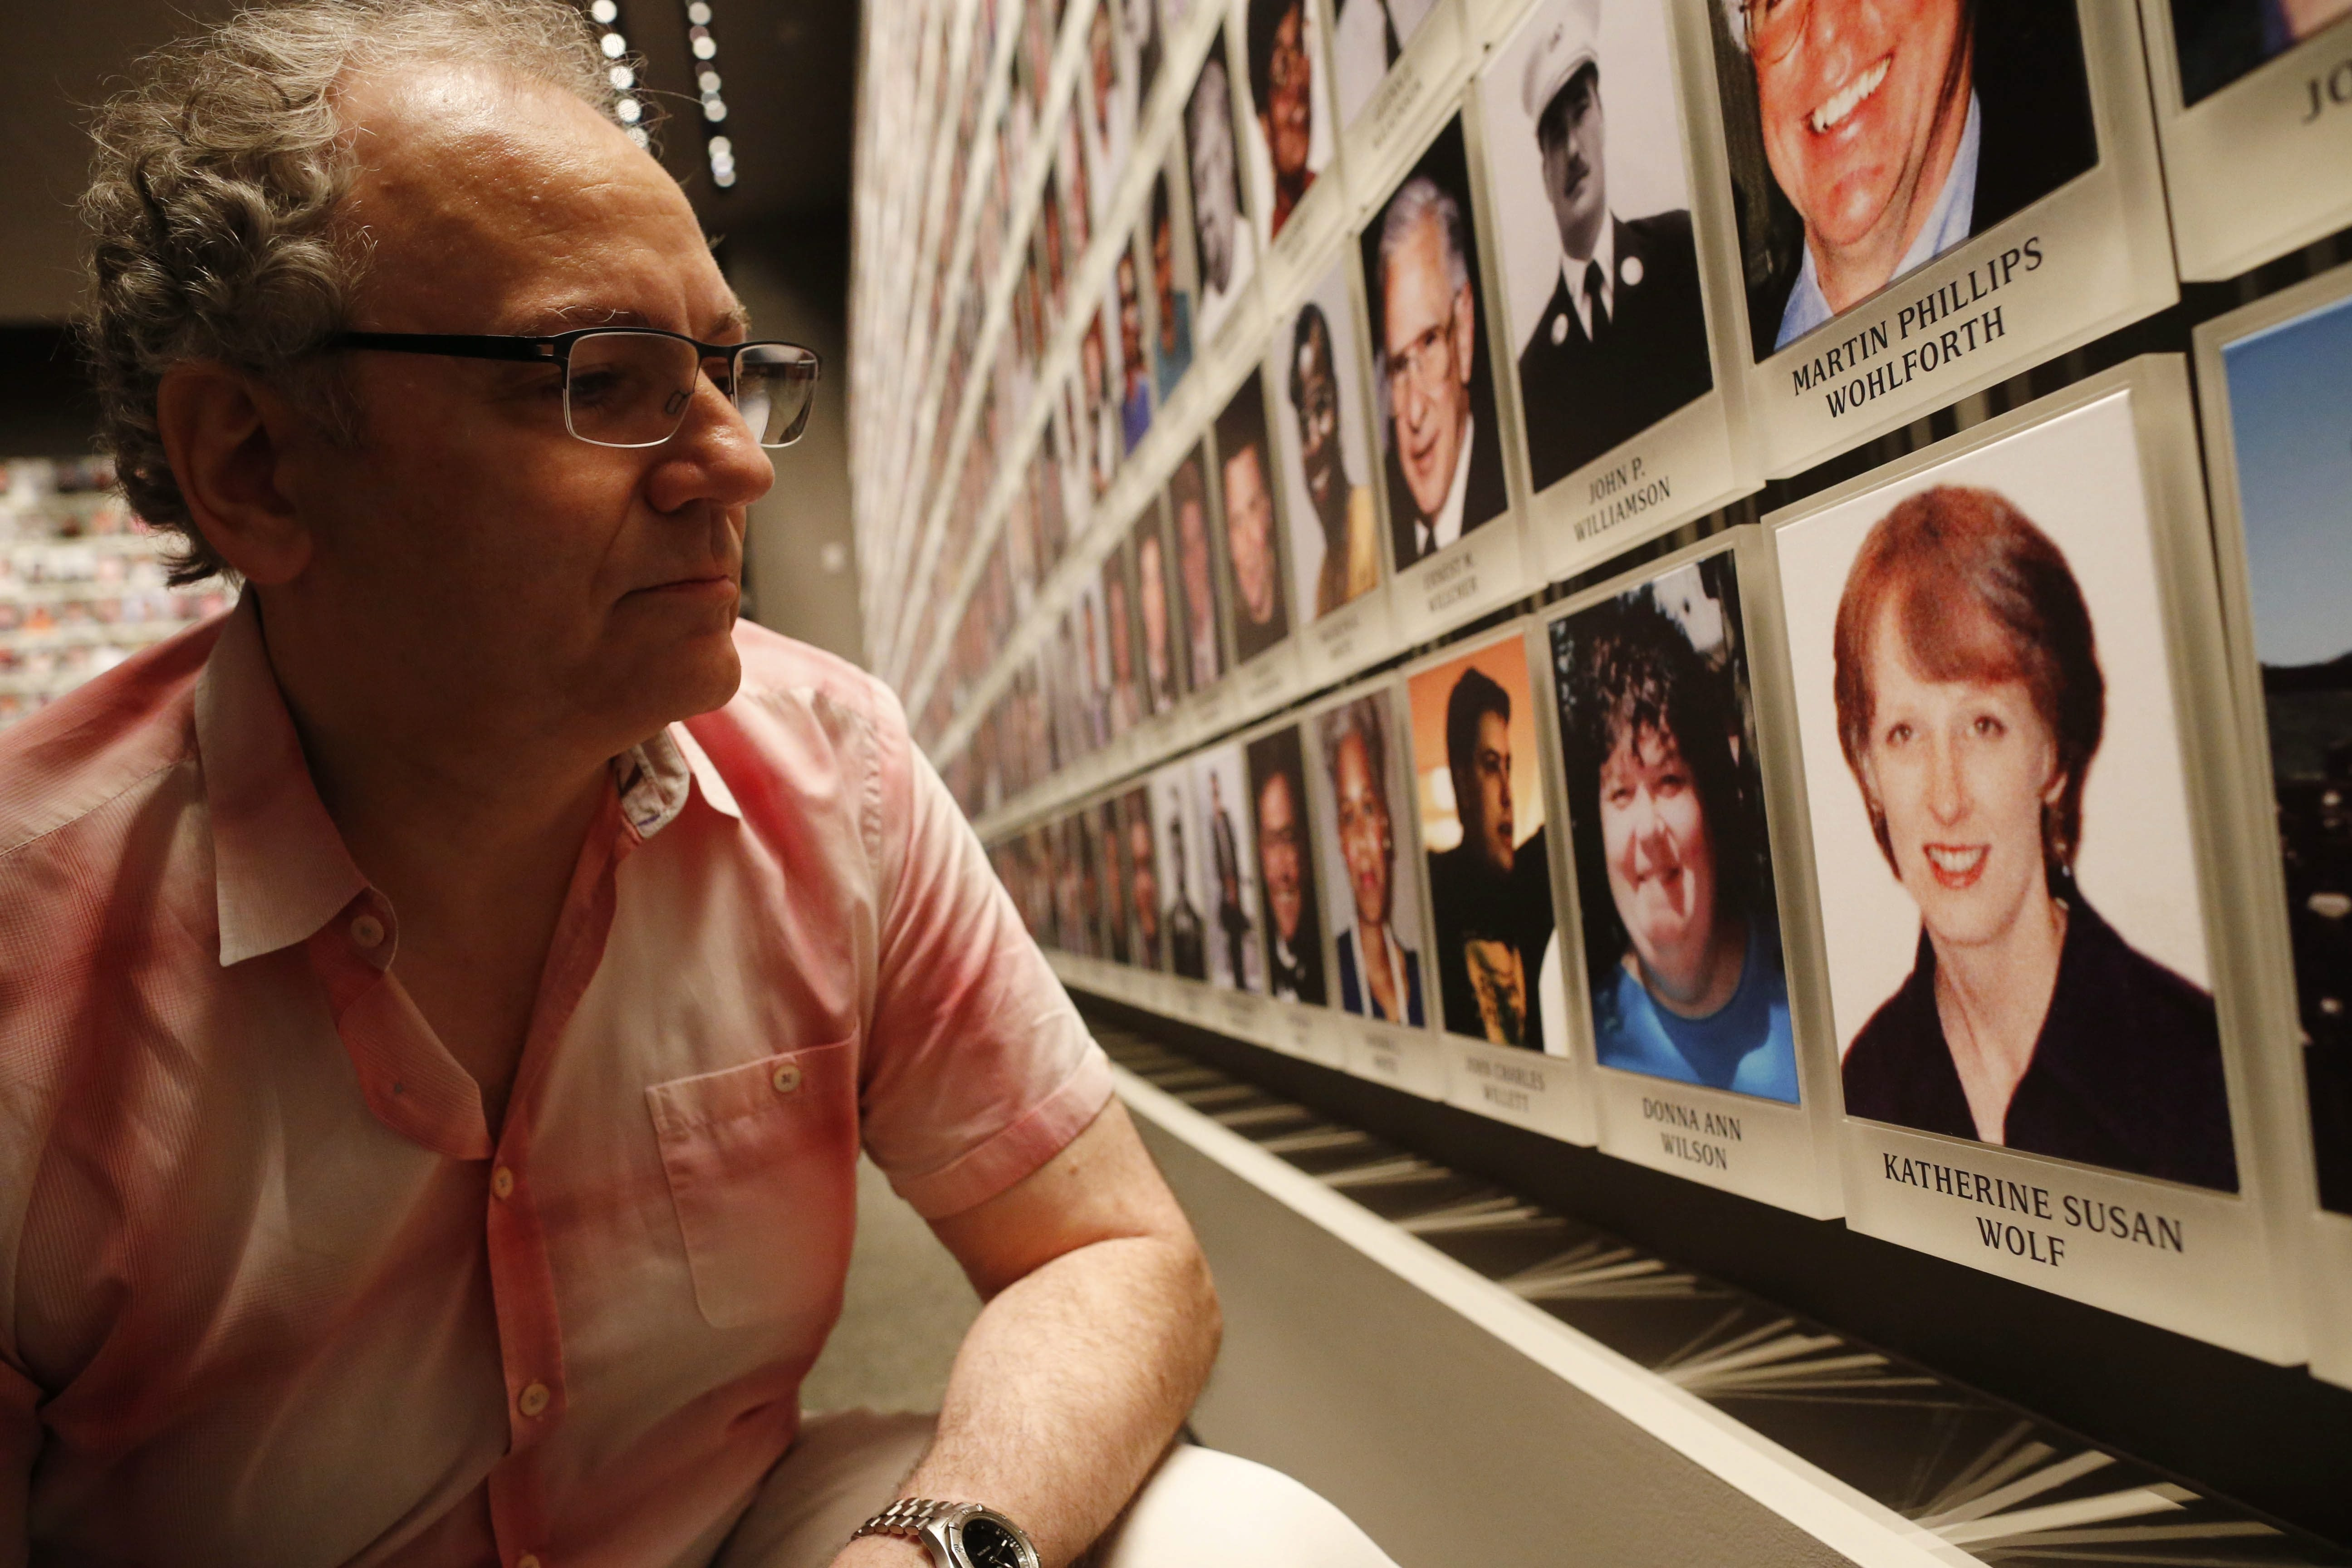 Charles Wolf, whose wife, Katherine, was killed in the 9/11 terrorist attacks on the World Trade Center, looks at his wife's photograph on the 'Wall of Faces' in the Memorial Exhibition at the National September 11 Memorial and Museum in New York City, Tuesday, Aug. 25, 2015.  (Derek Gee/Buffalo News)